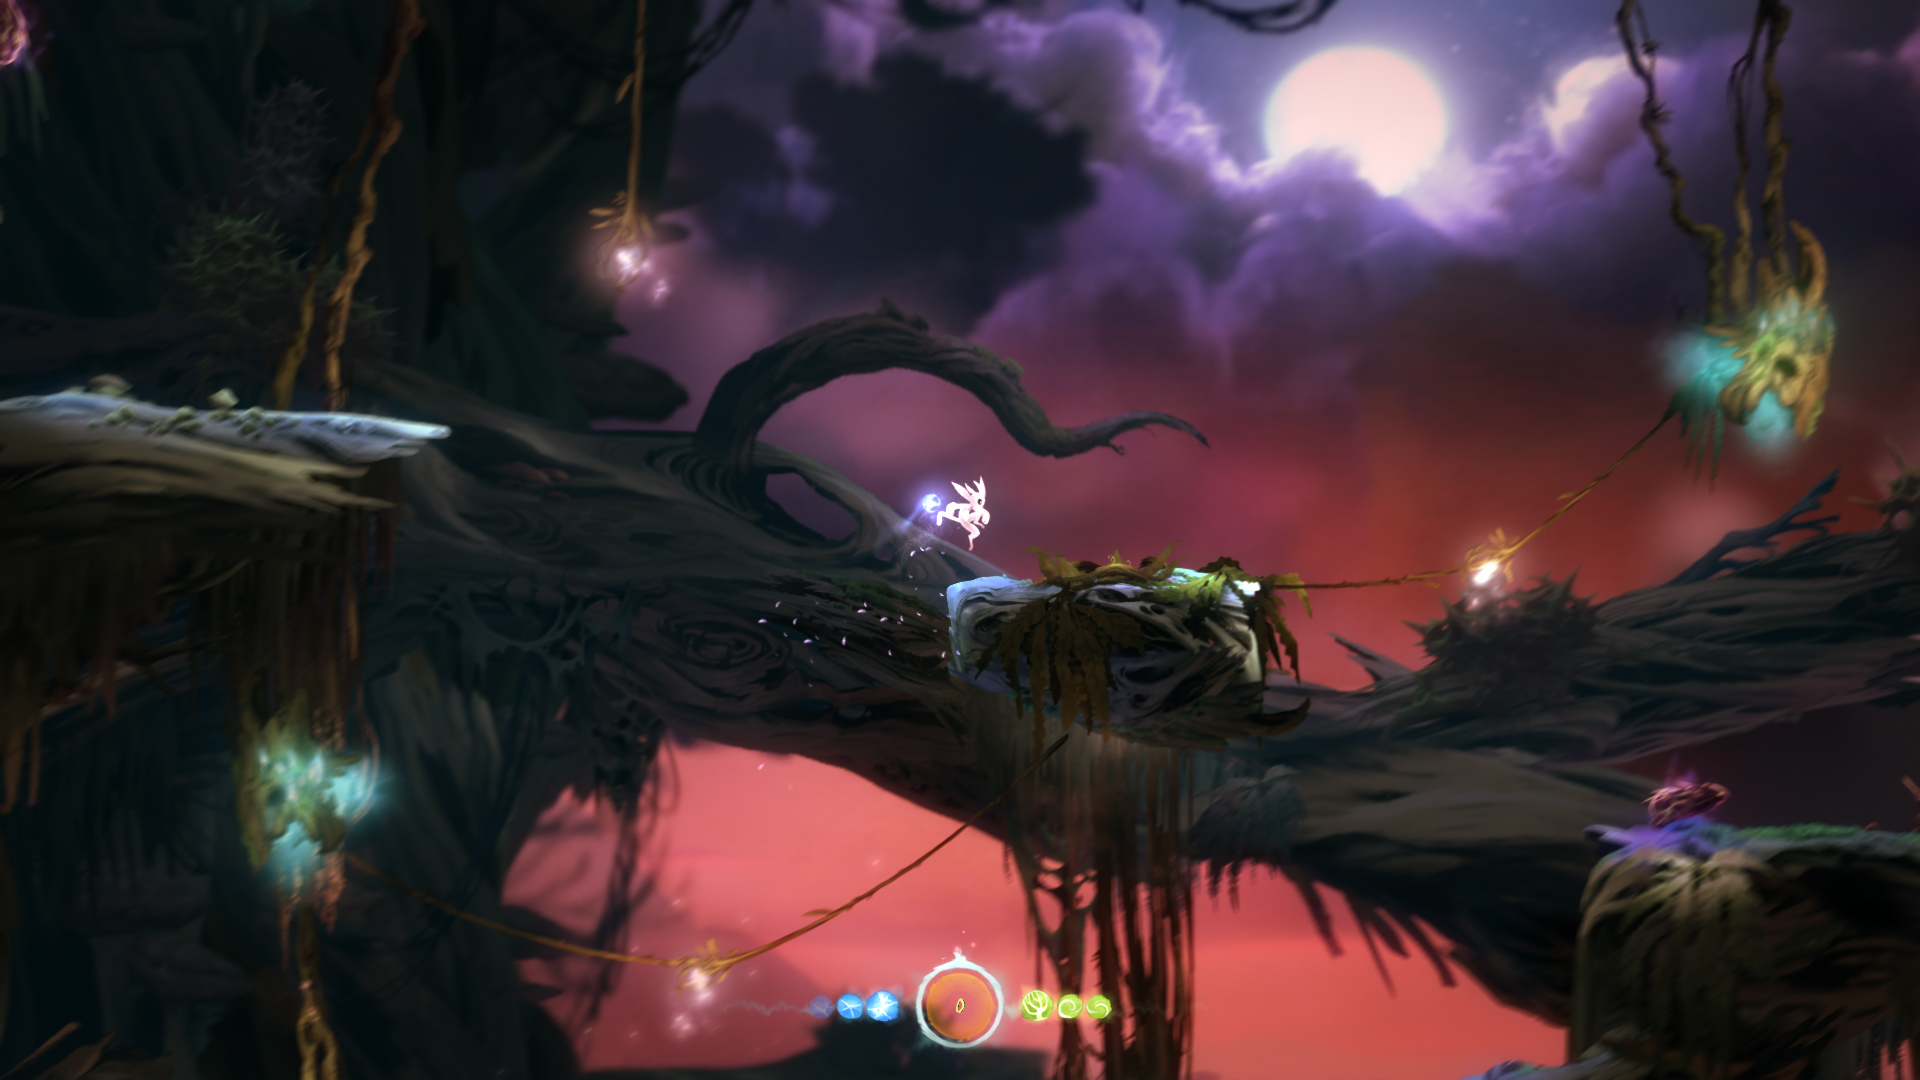 https://www.nextplayer.it/ori-and-the-blind-forest-unavventura-fiabesca-che-vi-fara-piangere-recensione/